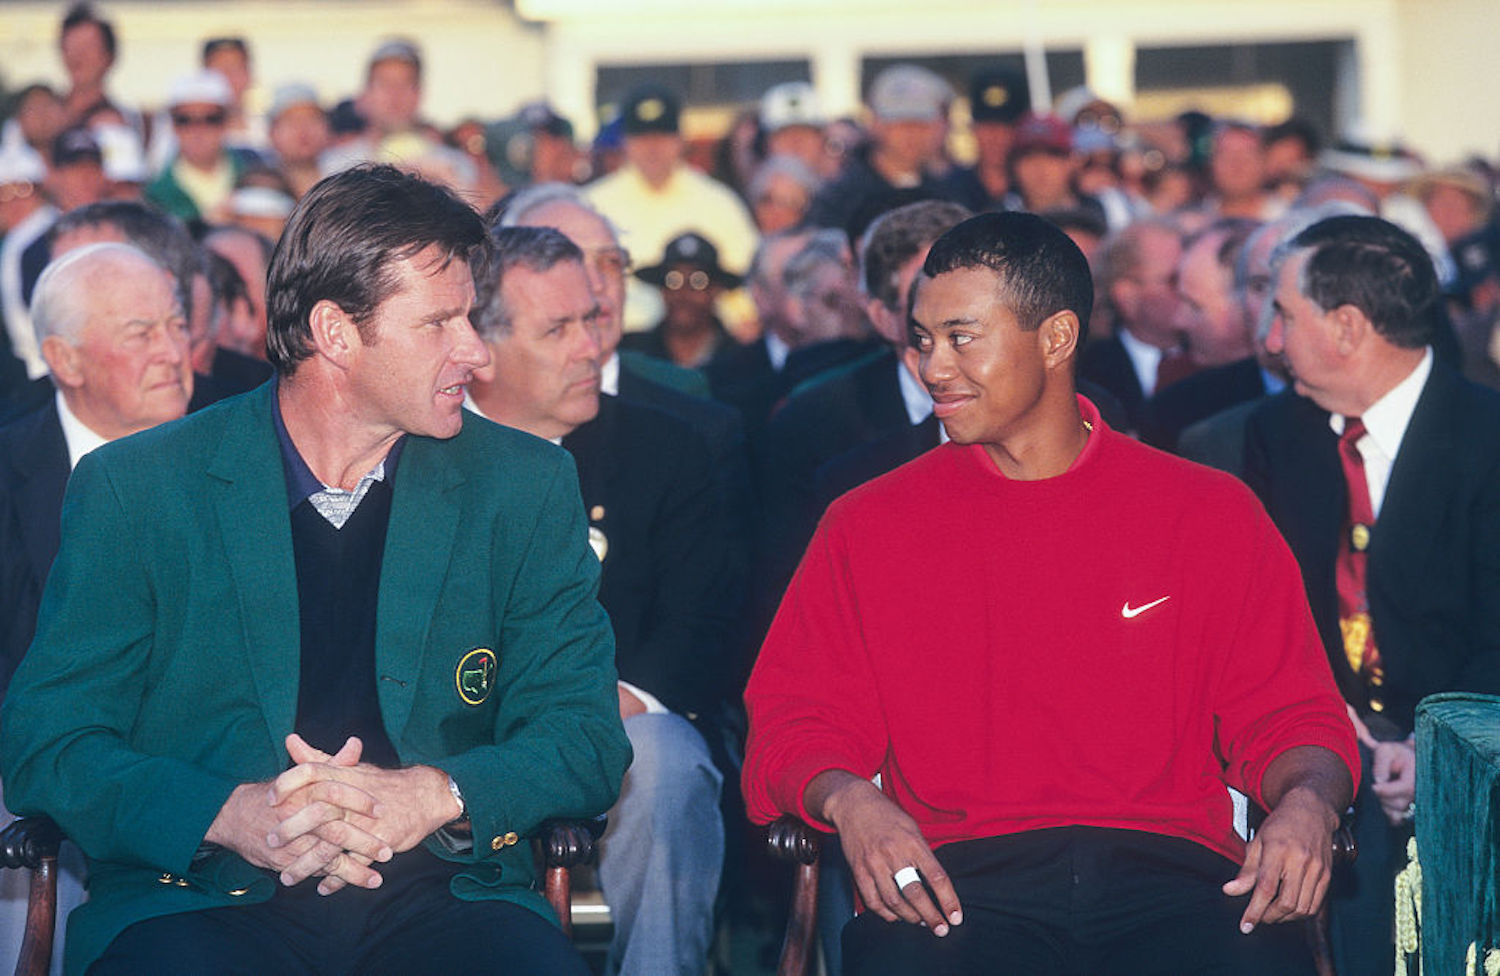 Tiger Woods is back at Augusta National searching for his sixth green jacket, but Nick Faldo thinks he won't be able to keep up with the field.